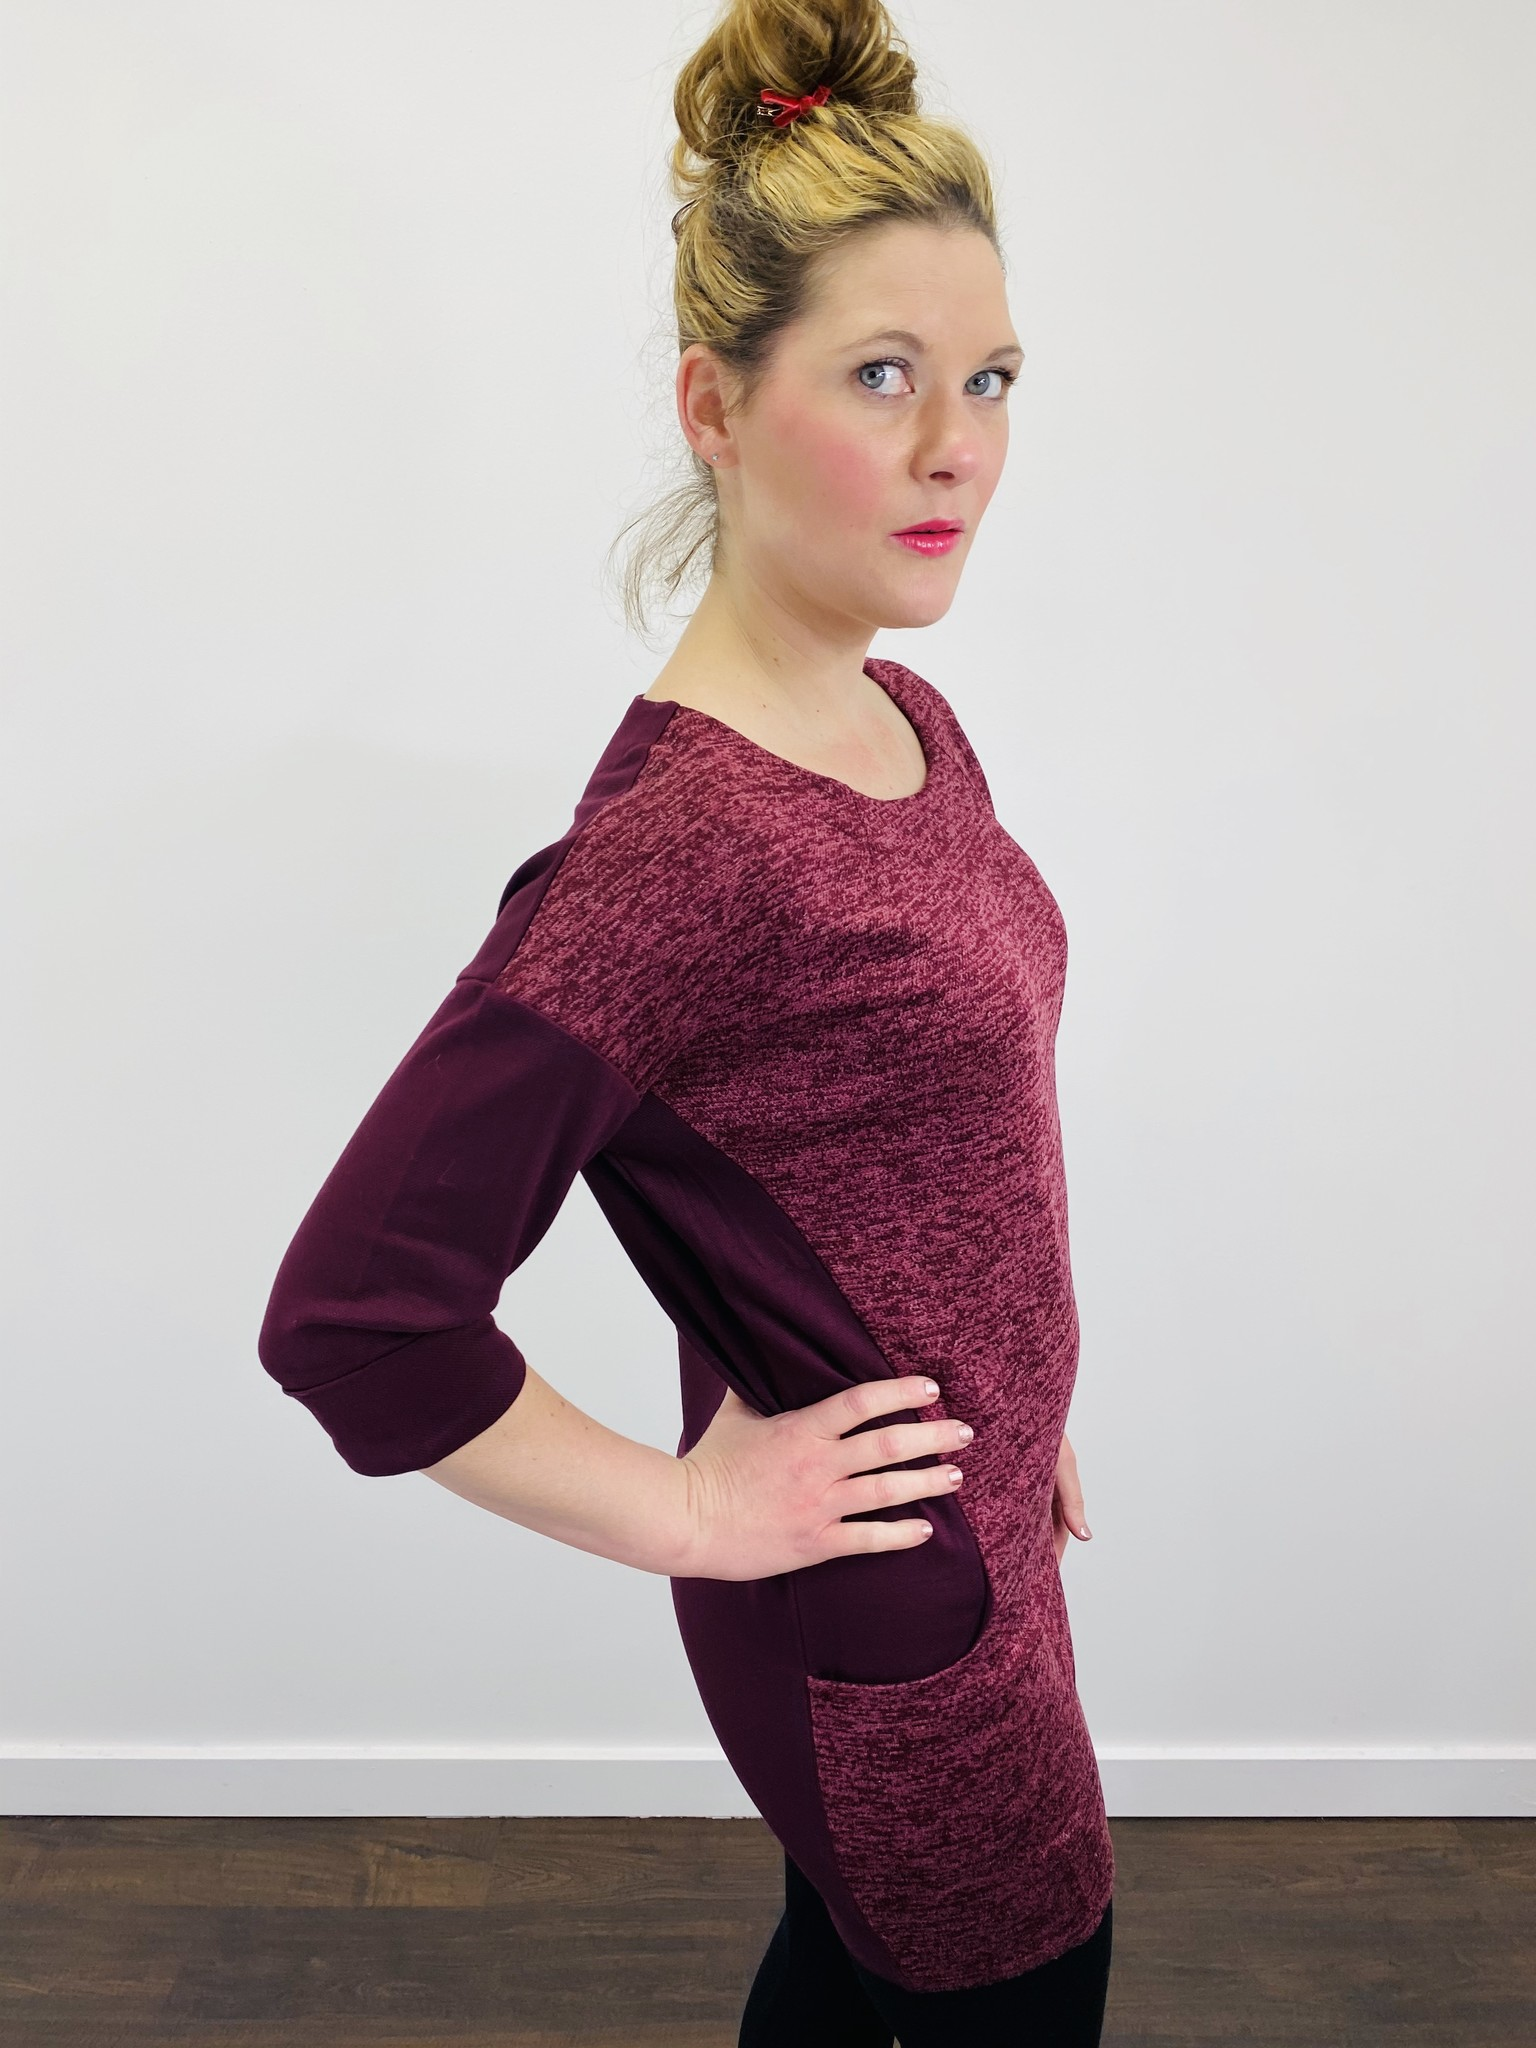 Papillon Heathered Front w/ Solid Side in Burgundy